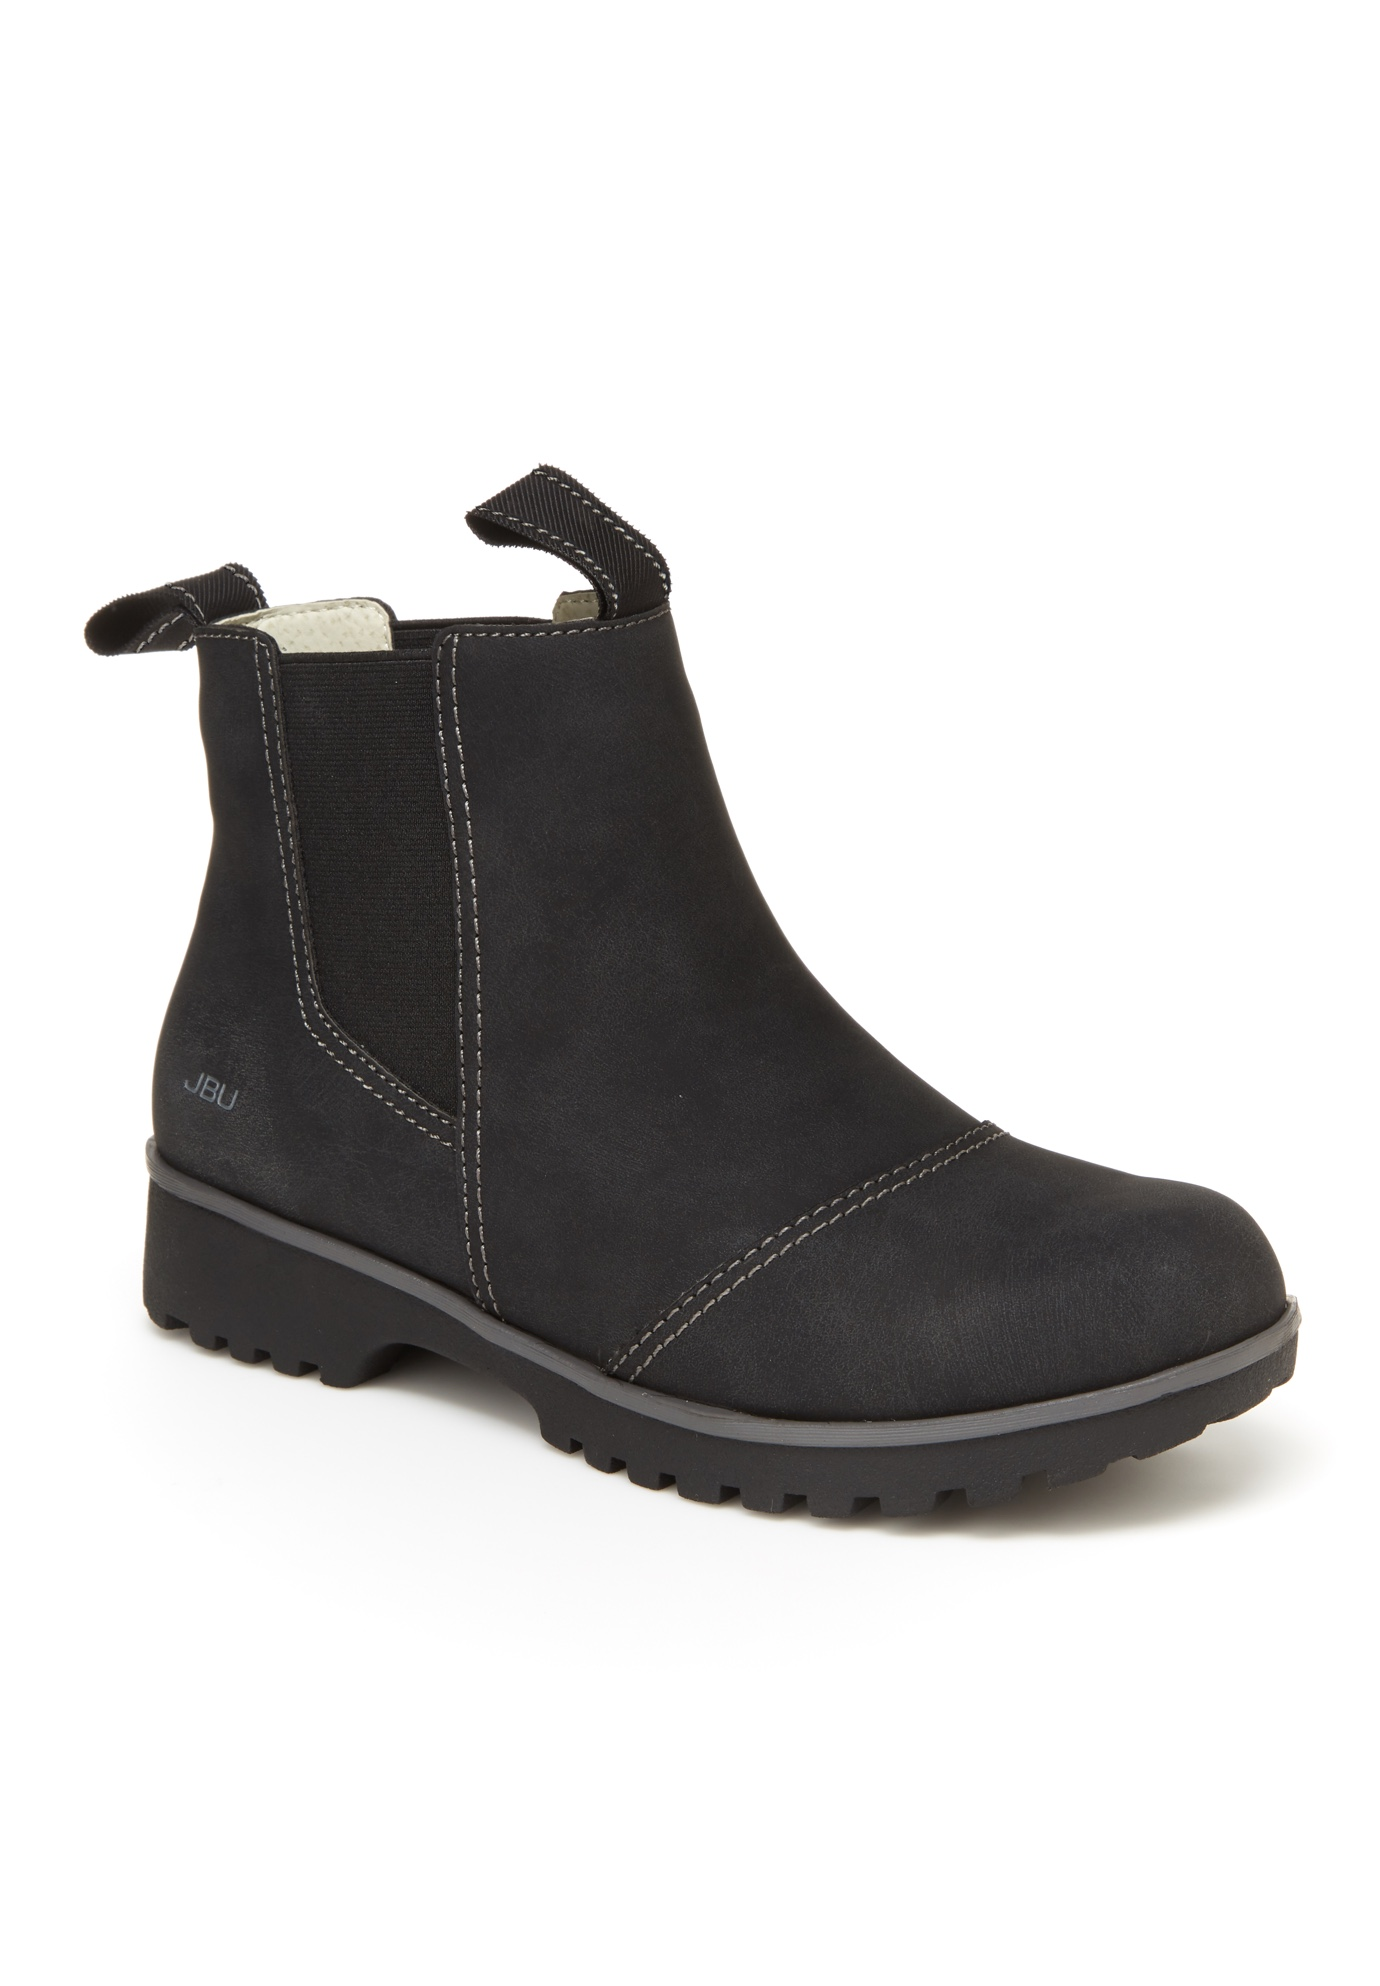 Eagle Weather-Ready Bootie by JBU by Jambu,